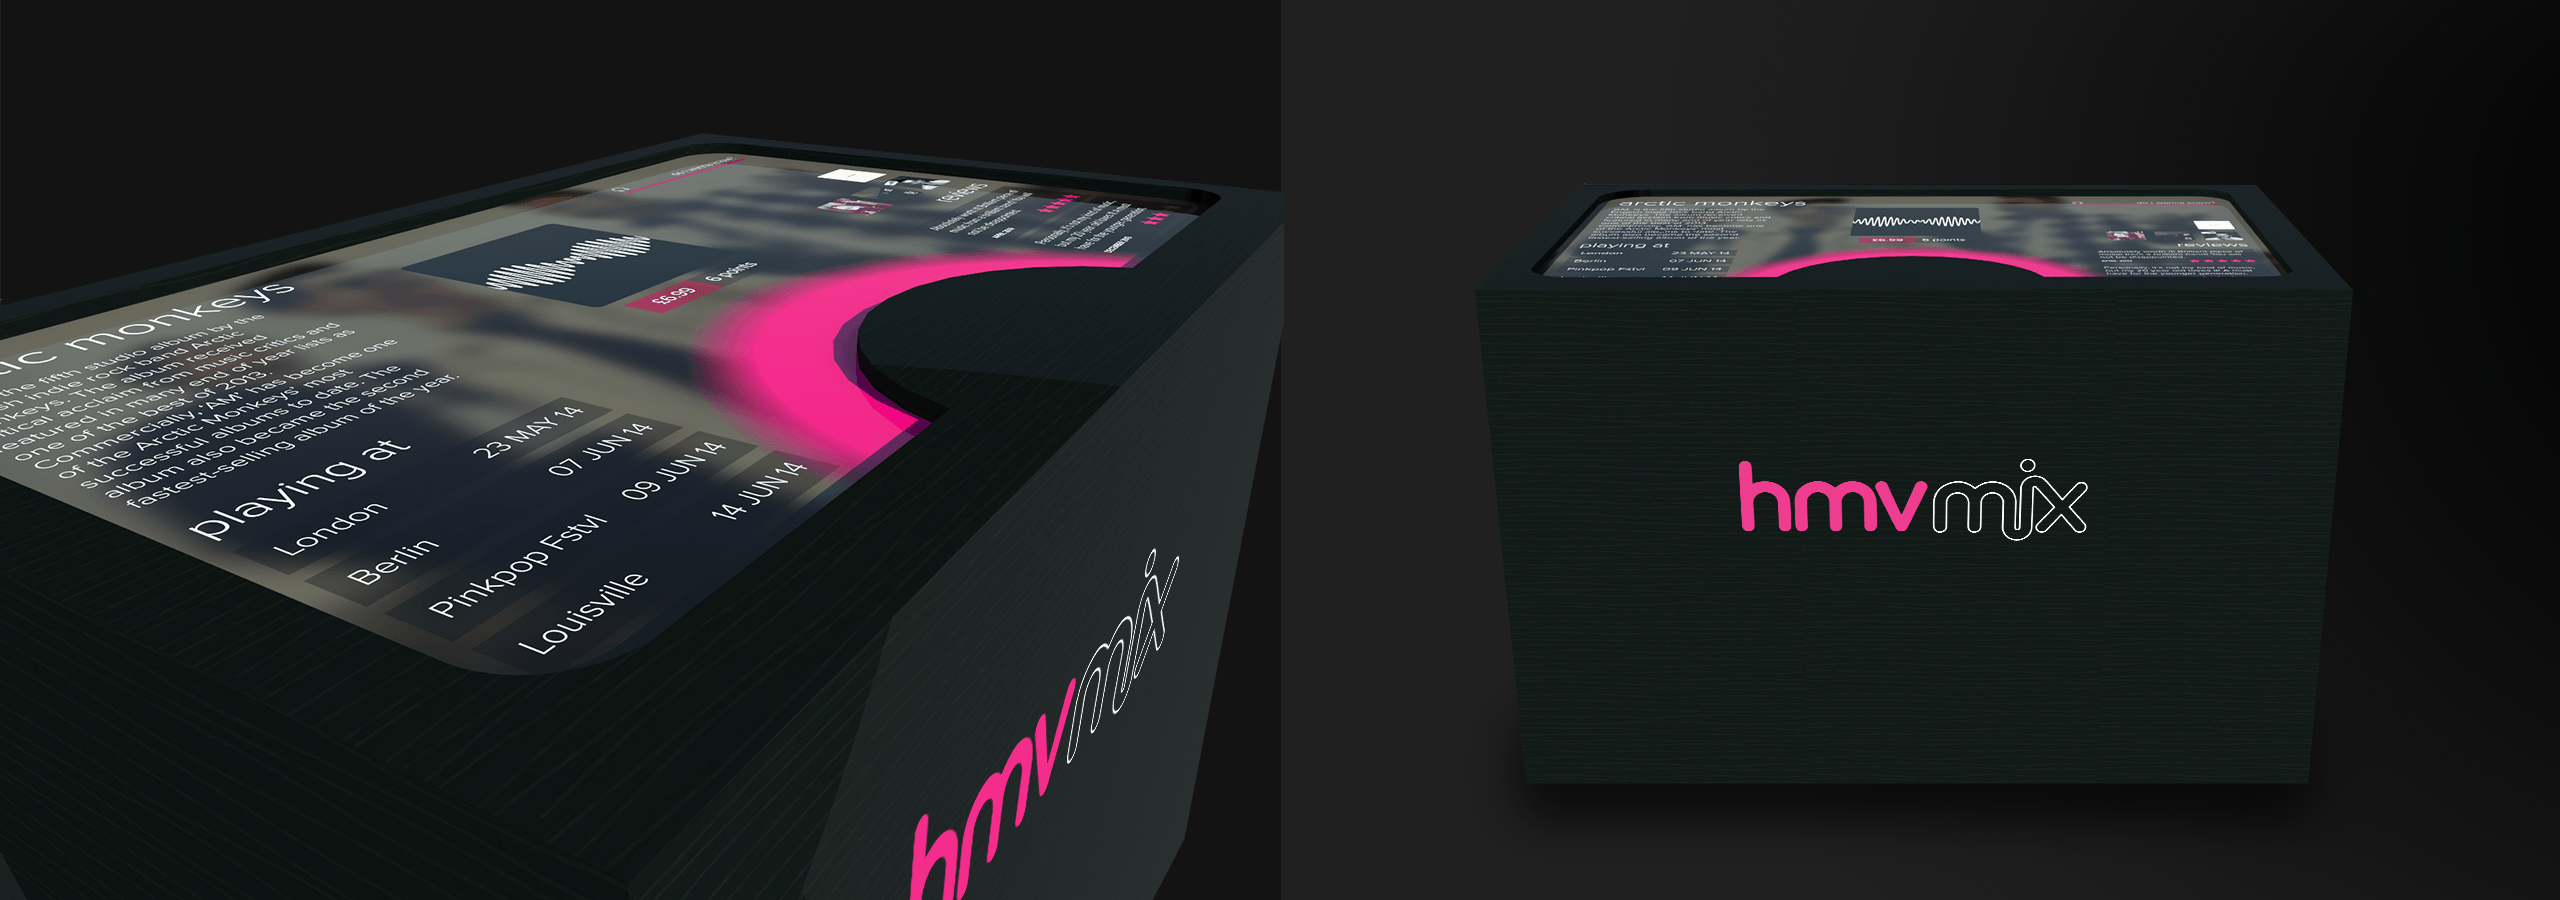 hmv_render_two